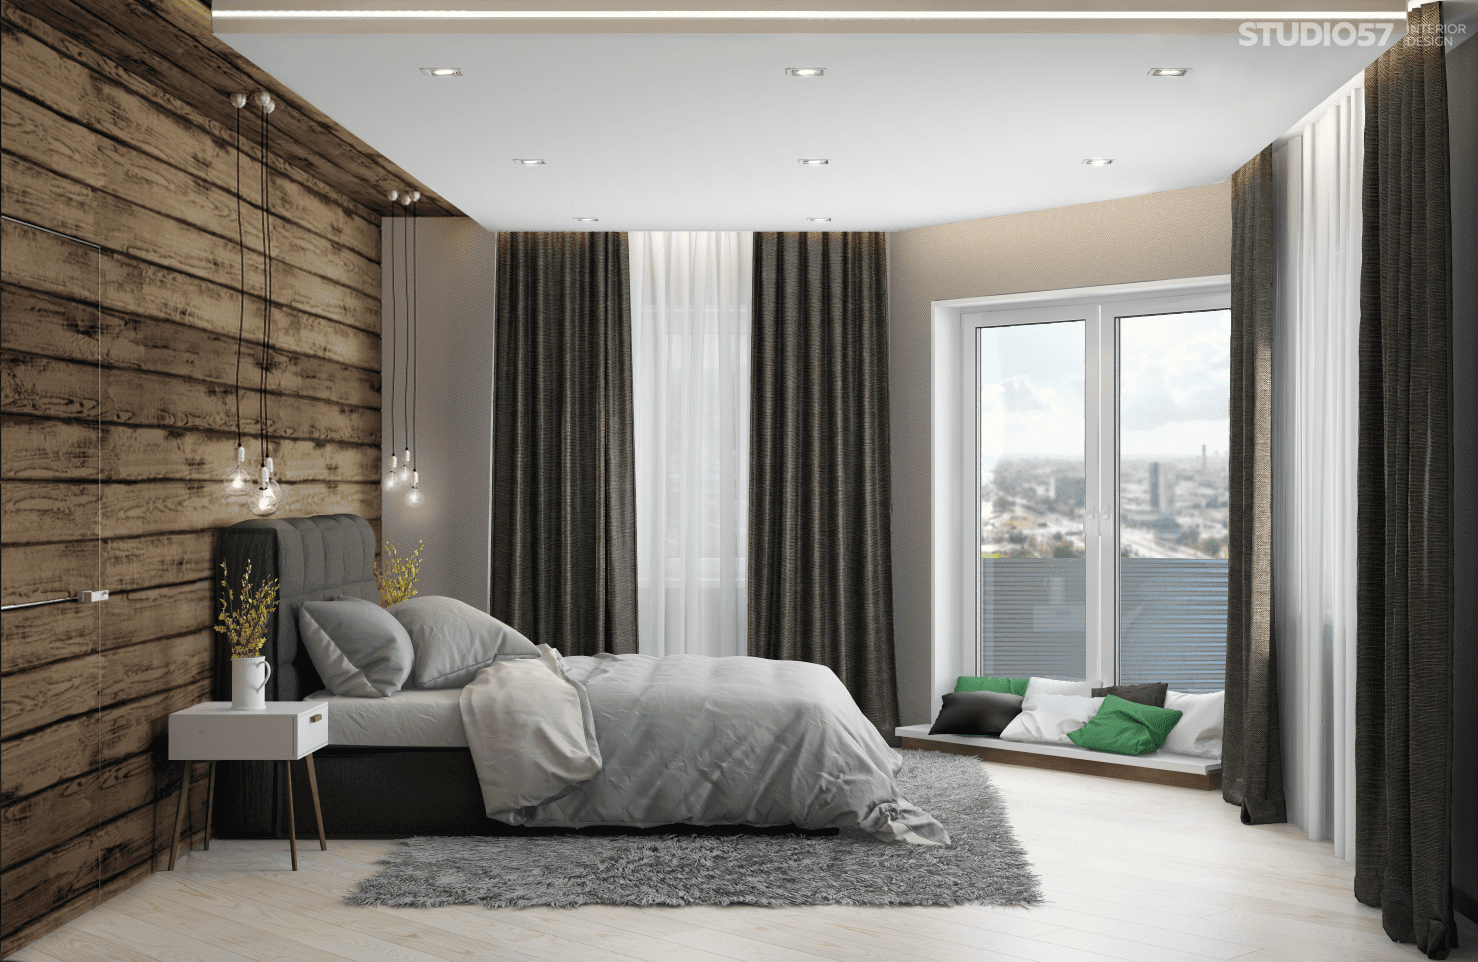 Bedroom interior in eco-style